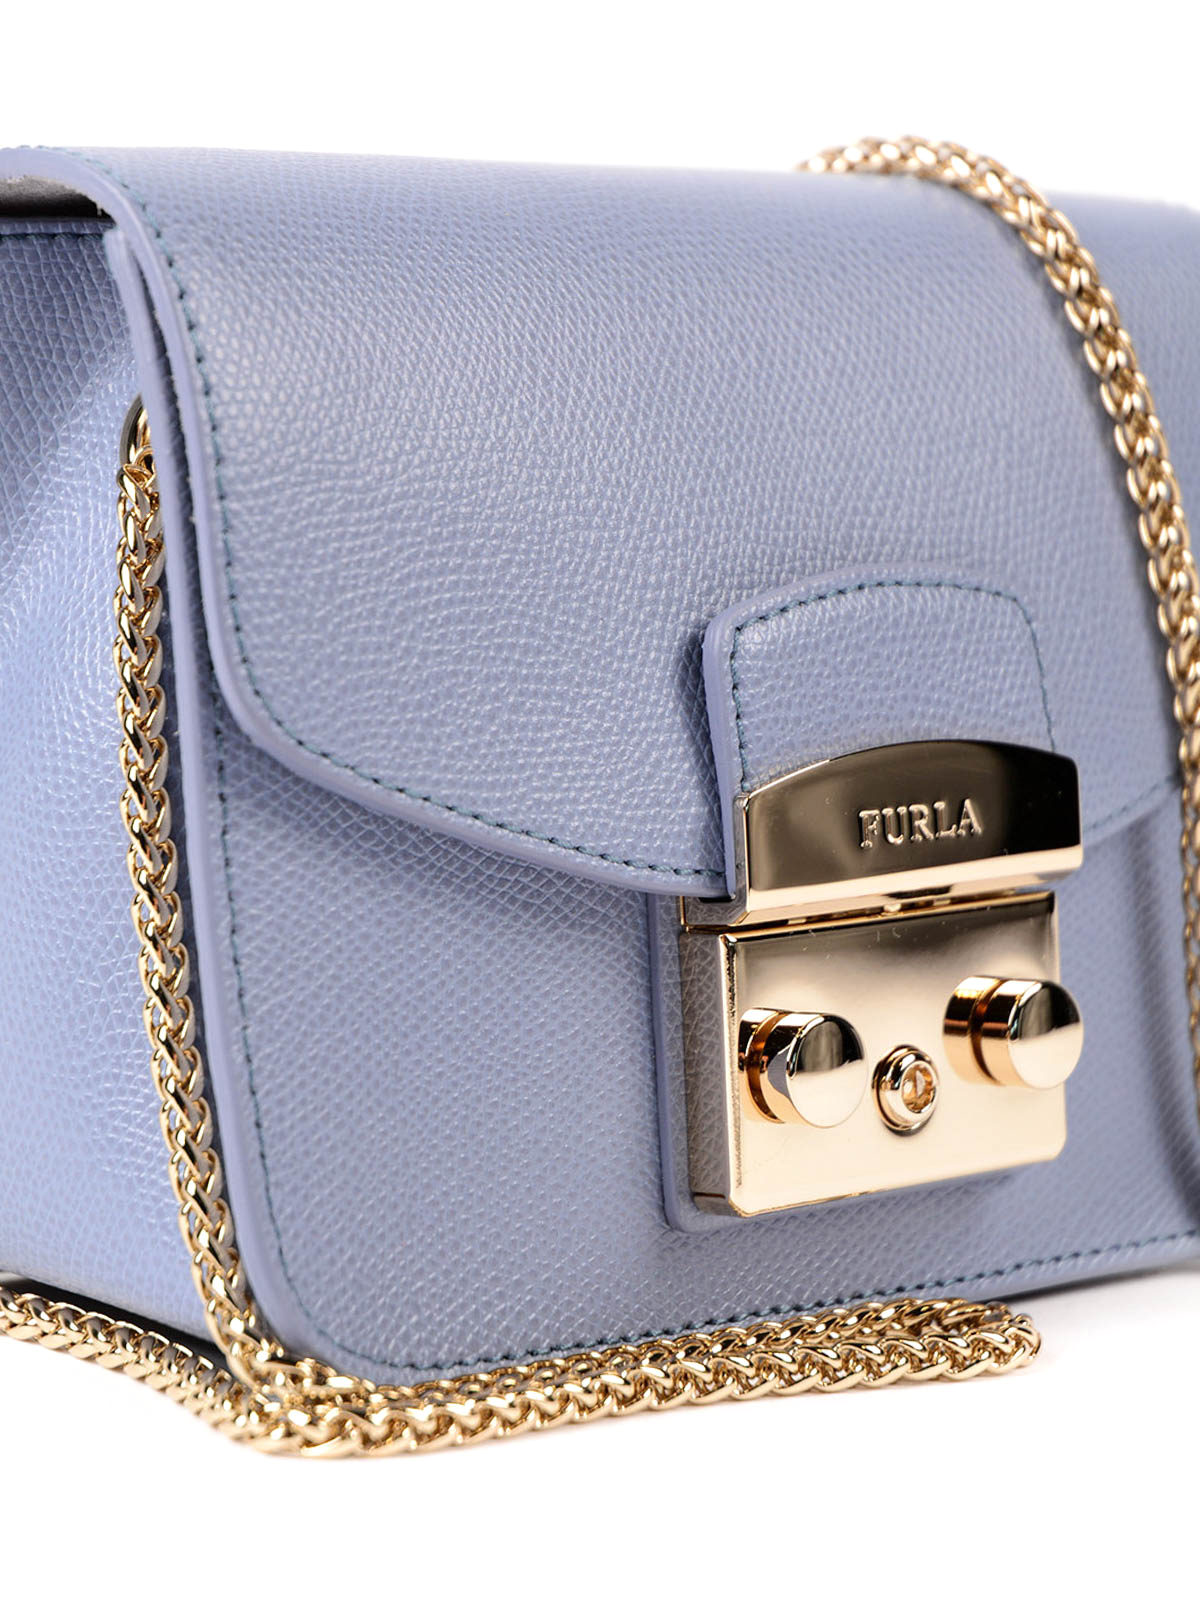 Metropolis Leather Mini Bag Online Furla